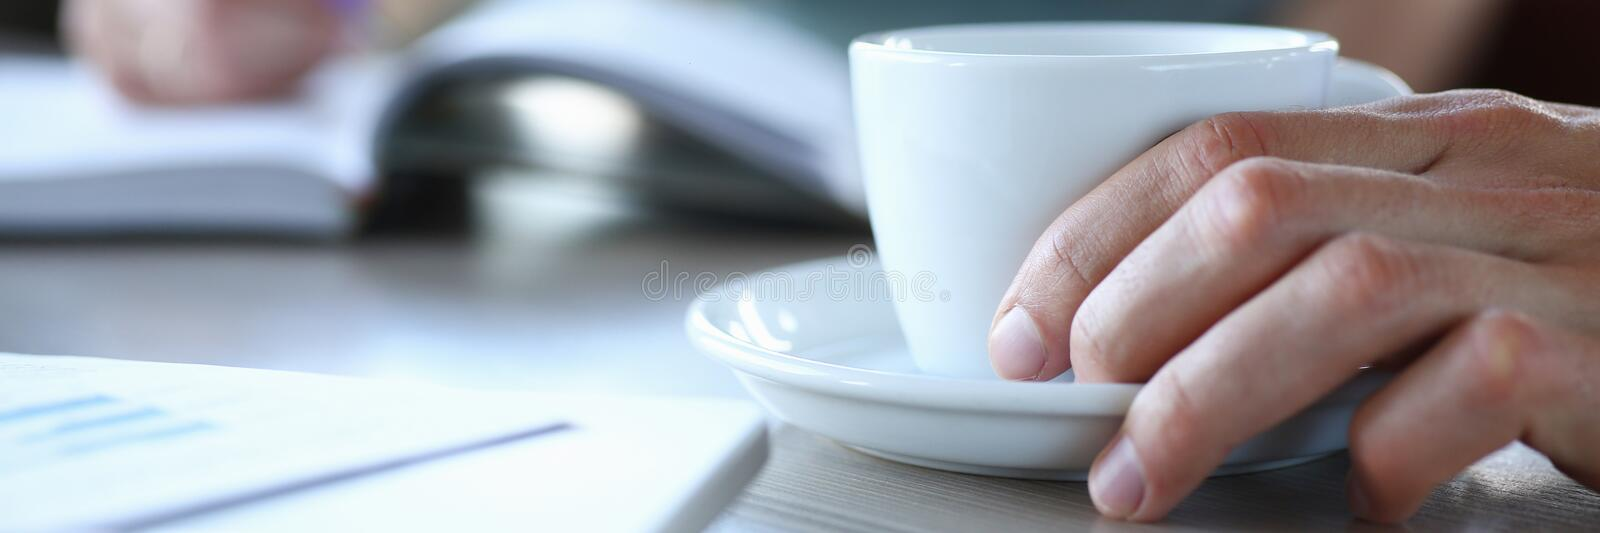 Business people in cafe coffee break at table hold cup of coffee in arm royalty free stock photography